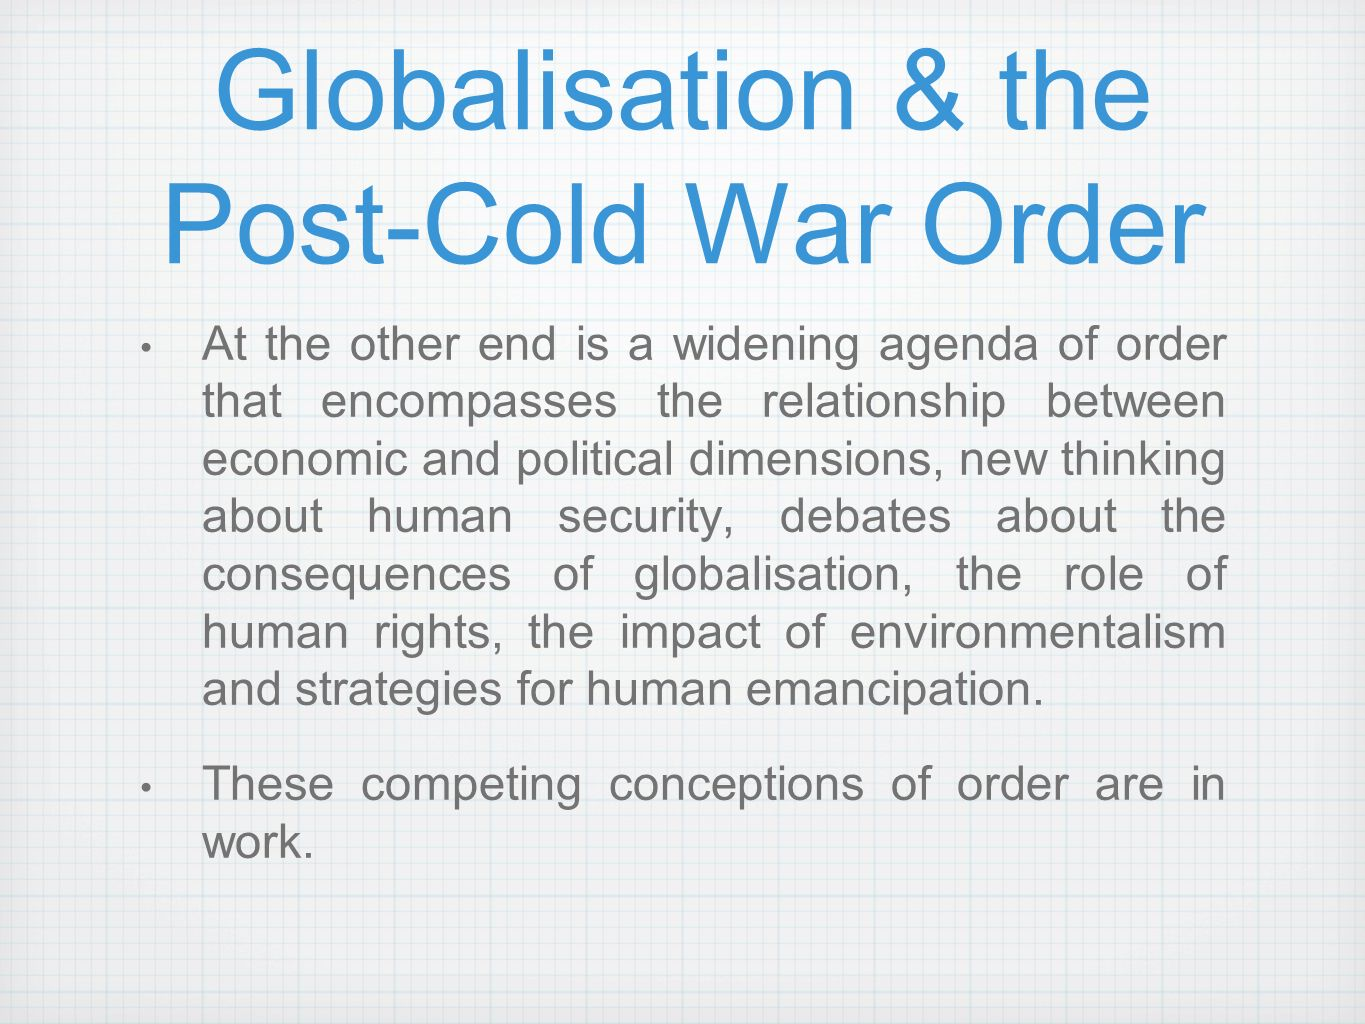 globalization and the post cold war order Moreover conservatives attack both antiwar and globalization protesters  years,  an era in which a multilateral consensus around a post-cold war us  interests  are not entirely united in their vision of an ideal world order.